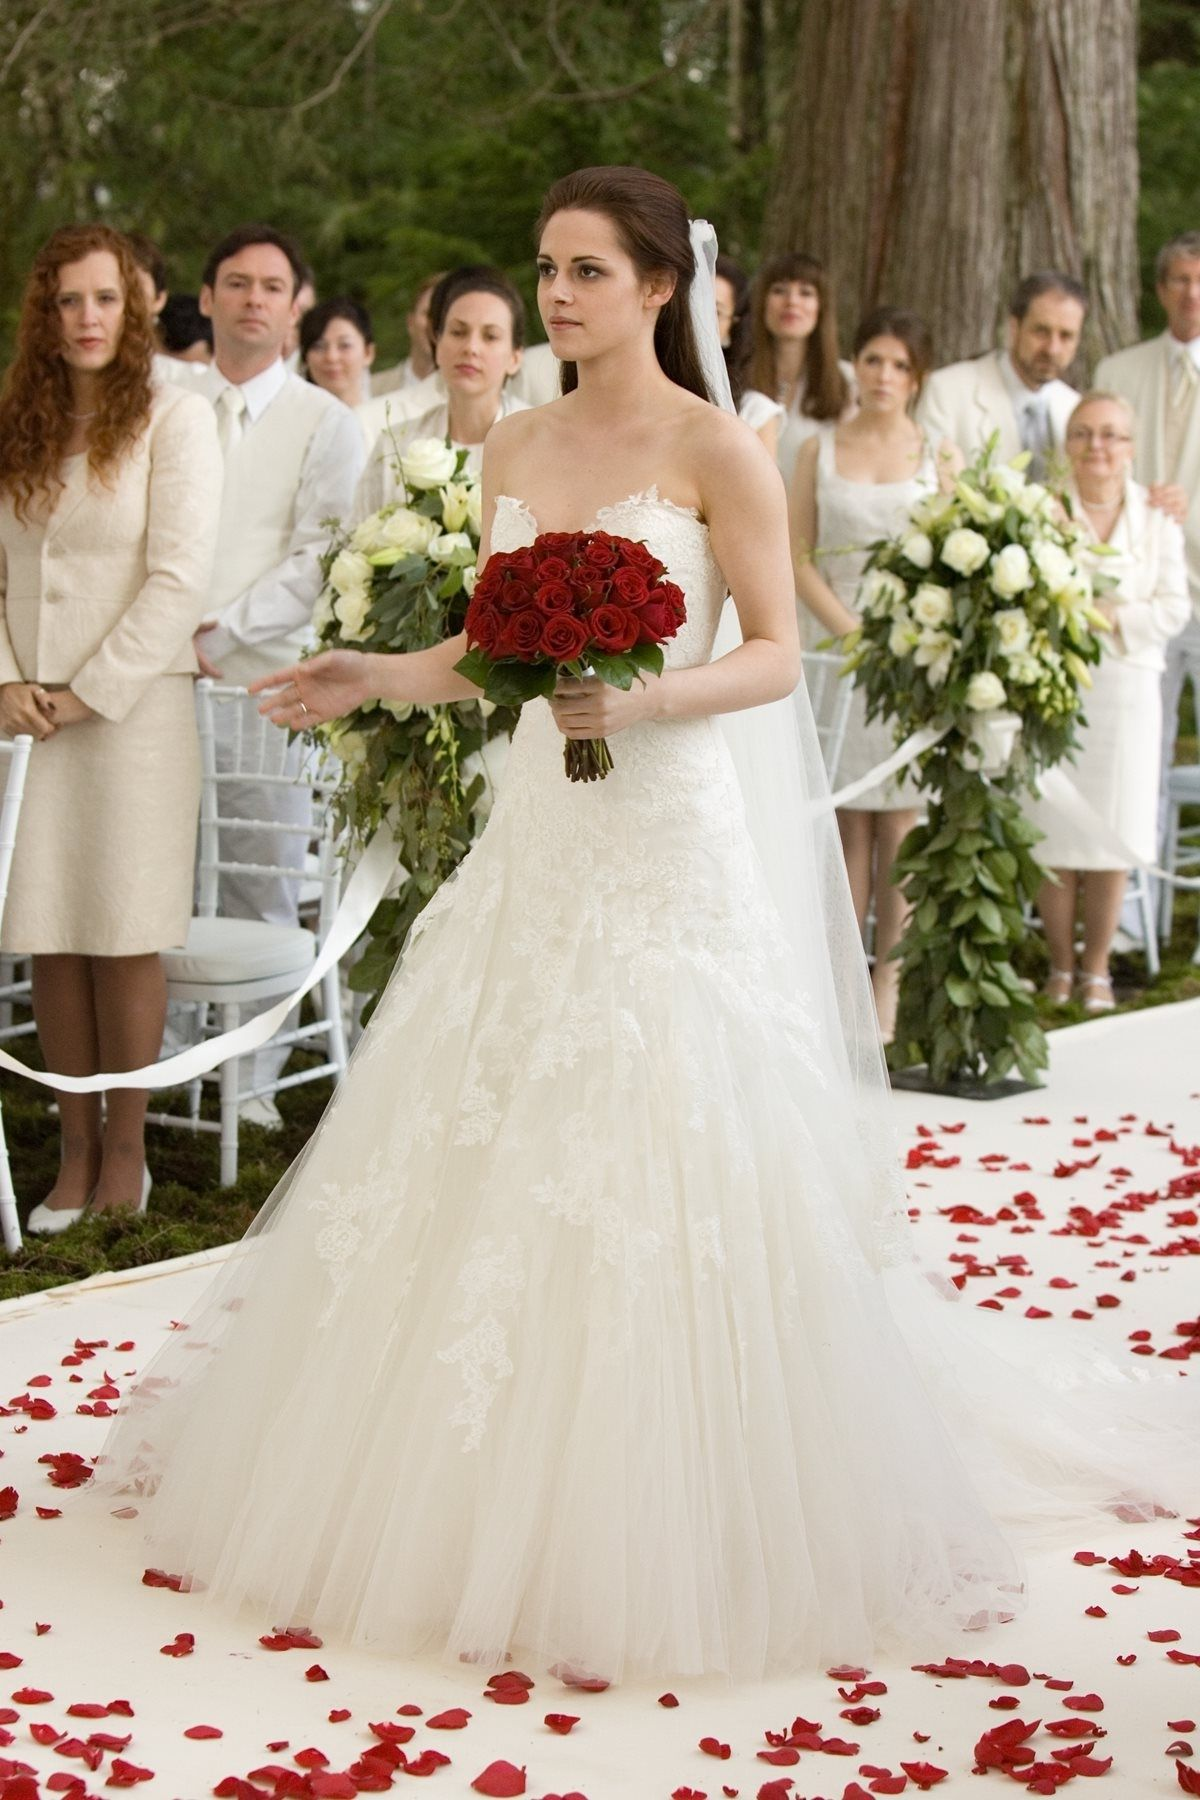 Bella swan wedding dress in her dream wedding dress Wedding dress dream meaning